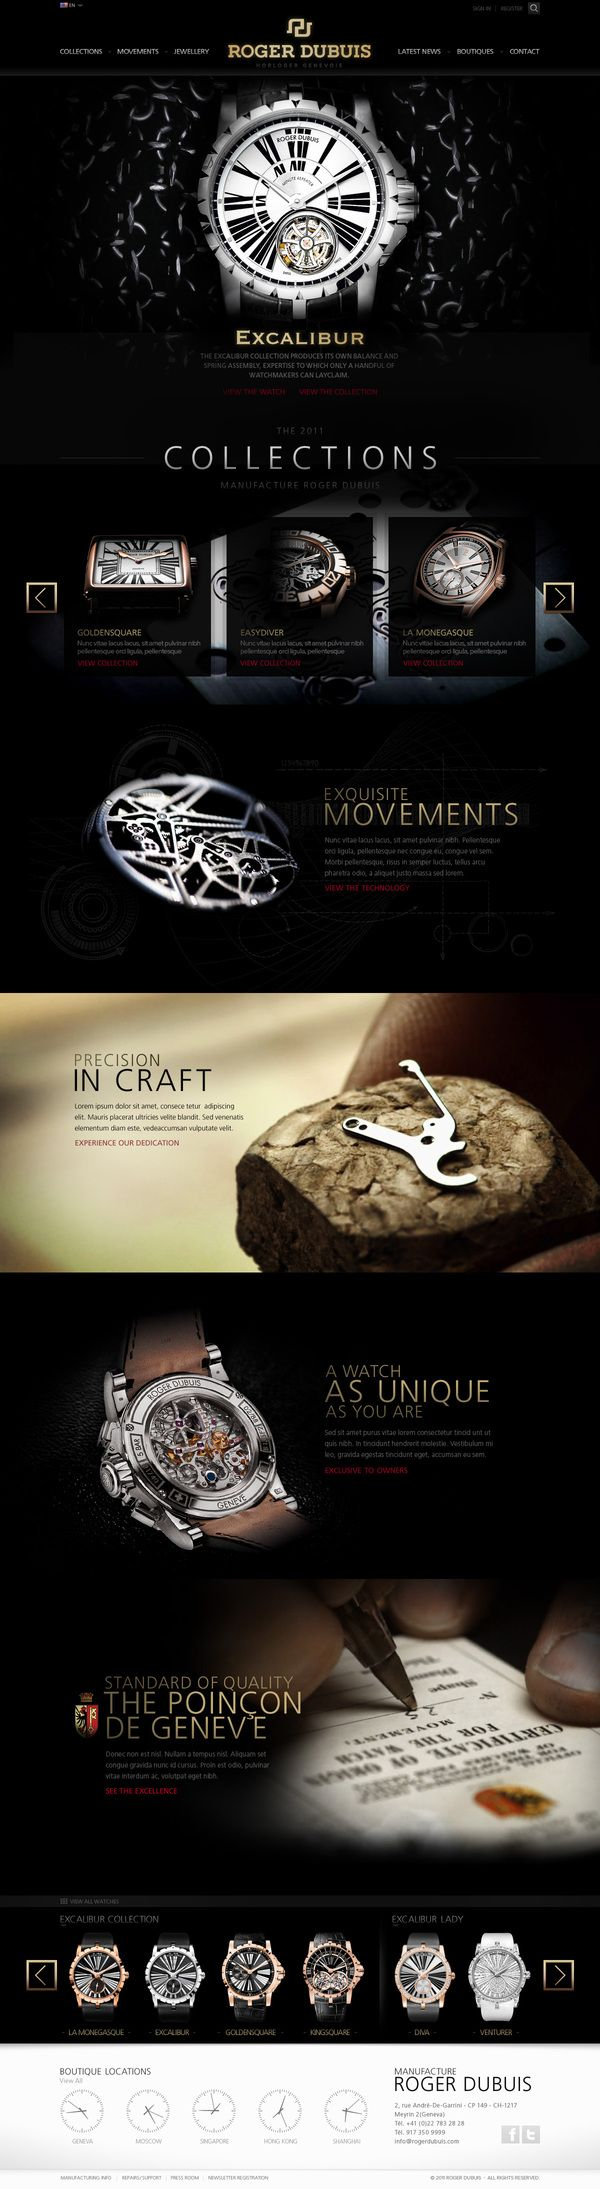 Roger Dubuis - Site Pitch Redesign by Abe Levin, via Behance | Repinned by www.BlickeDeeler.de